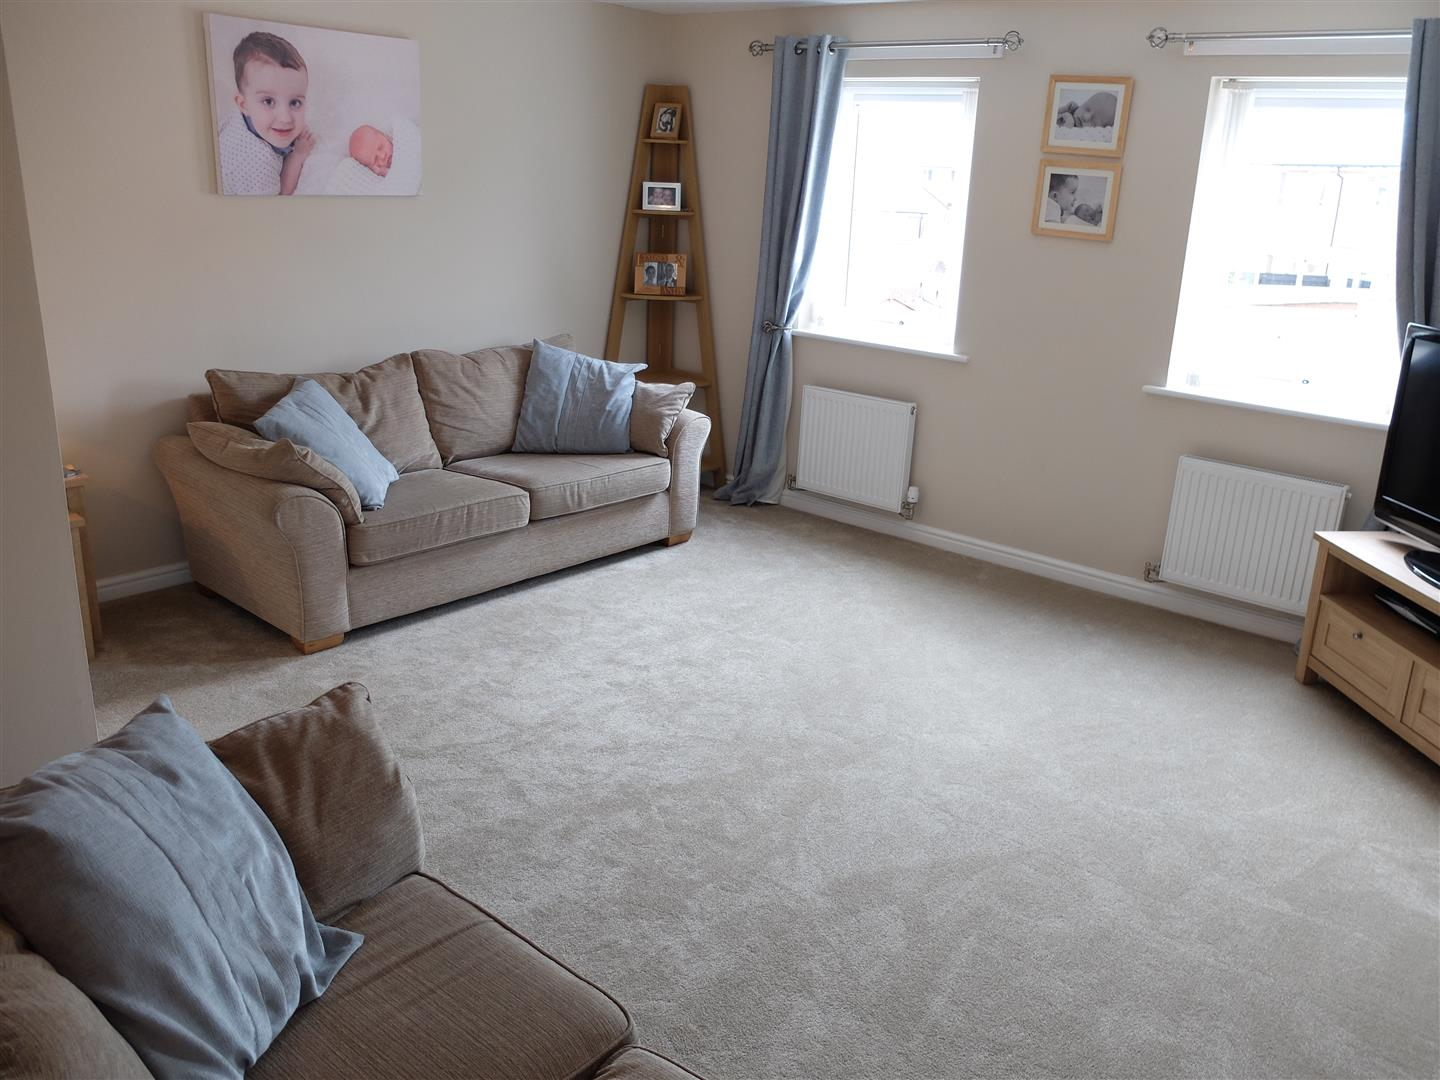 16 Tramside Way Carlisle 4 Bedrooms House - Townhouse On Sale 38,000